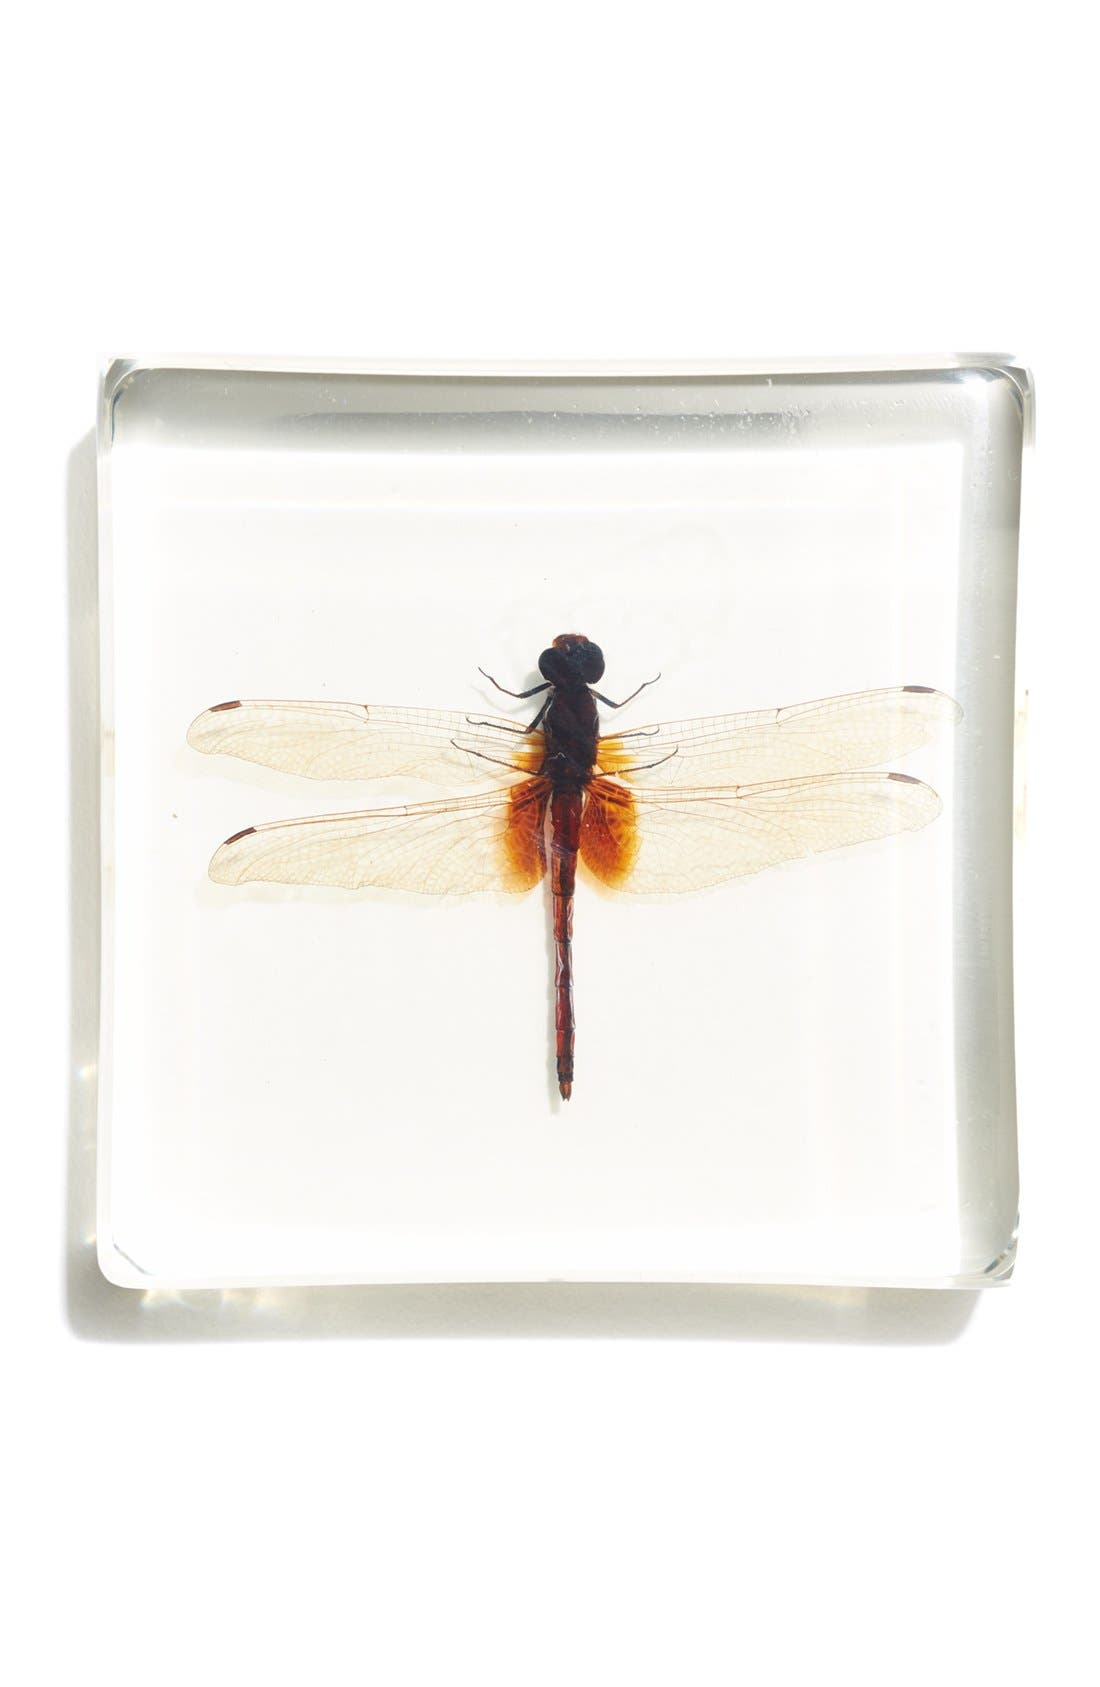 Ditch Jewel Dragonfly in Resin, Main, color, 960